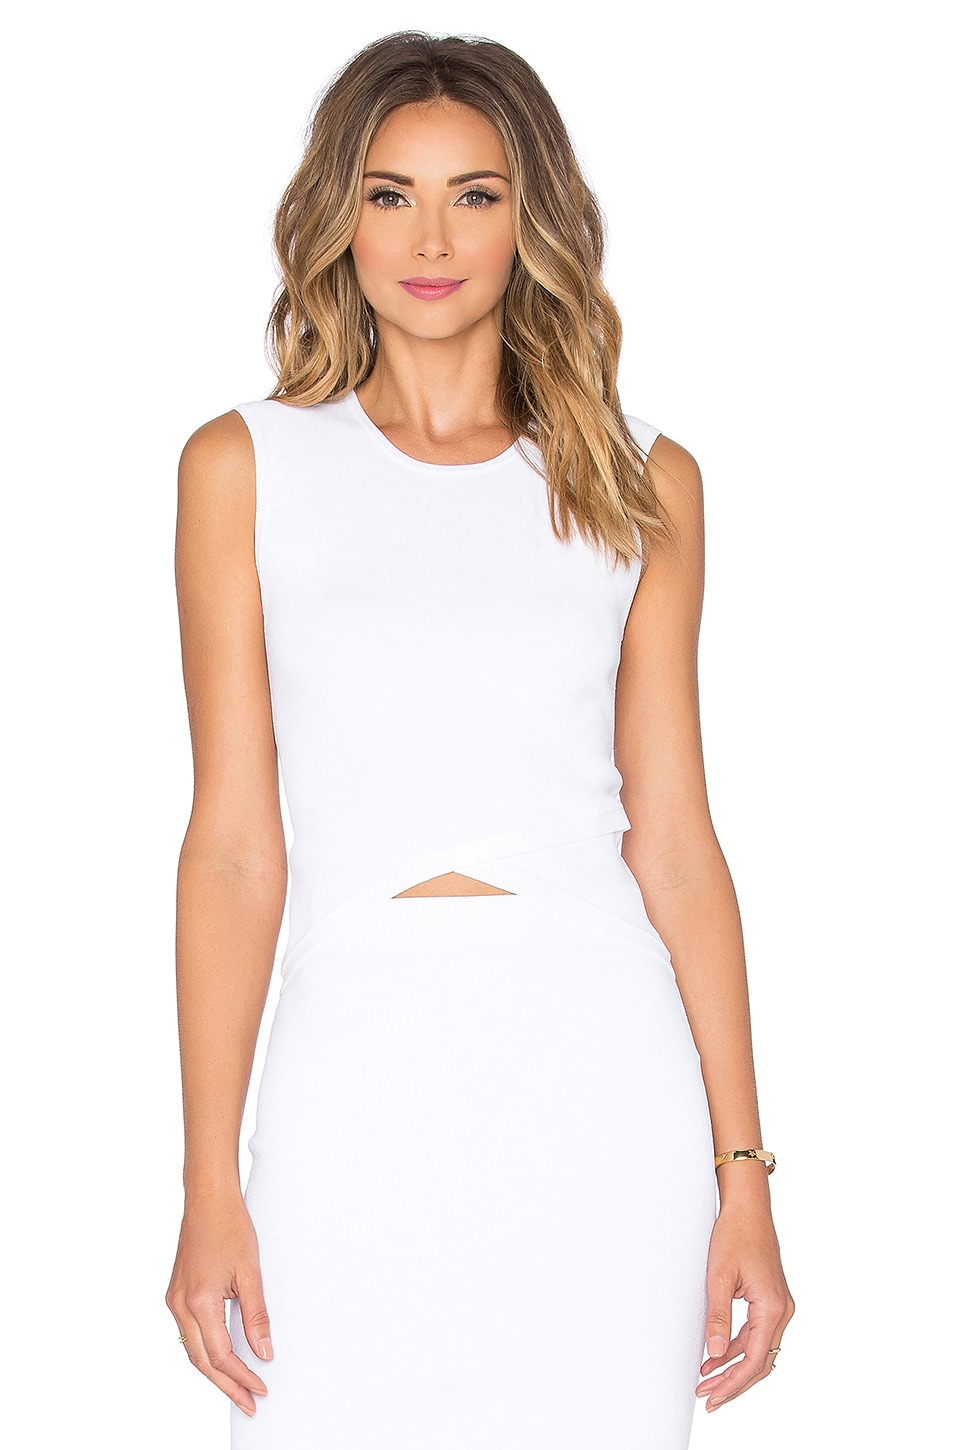 Autumn Cashmere Criss Cross Crop Top in White